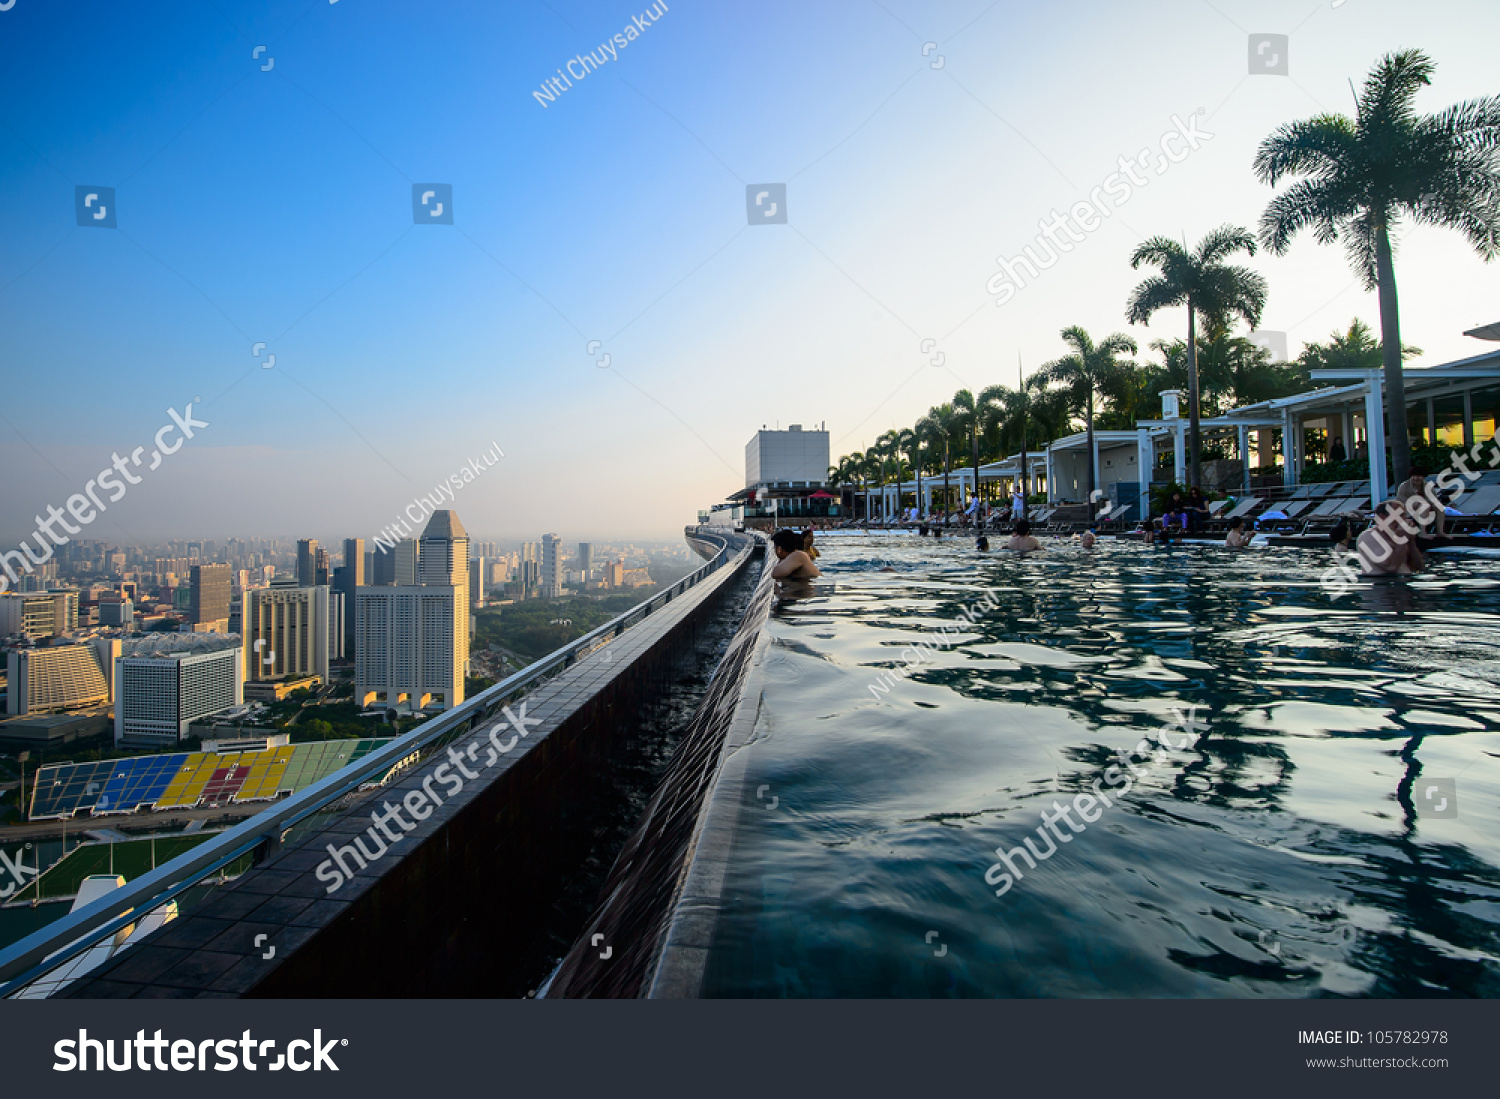 Singapore April 5 Swimming Pool Of The Marina Bay Sands On April 5 2012 In Singapore It 39 S